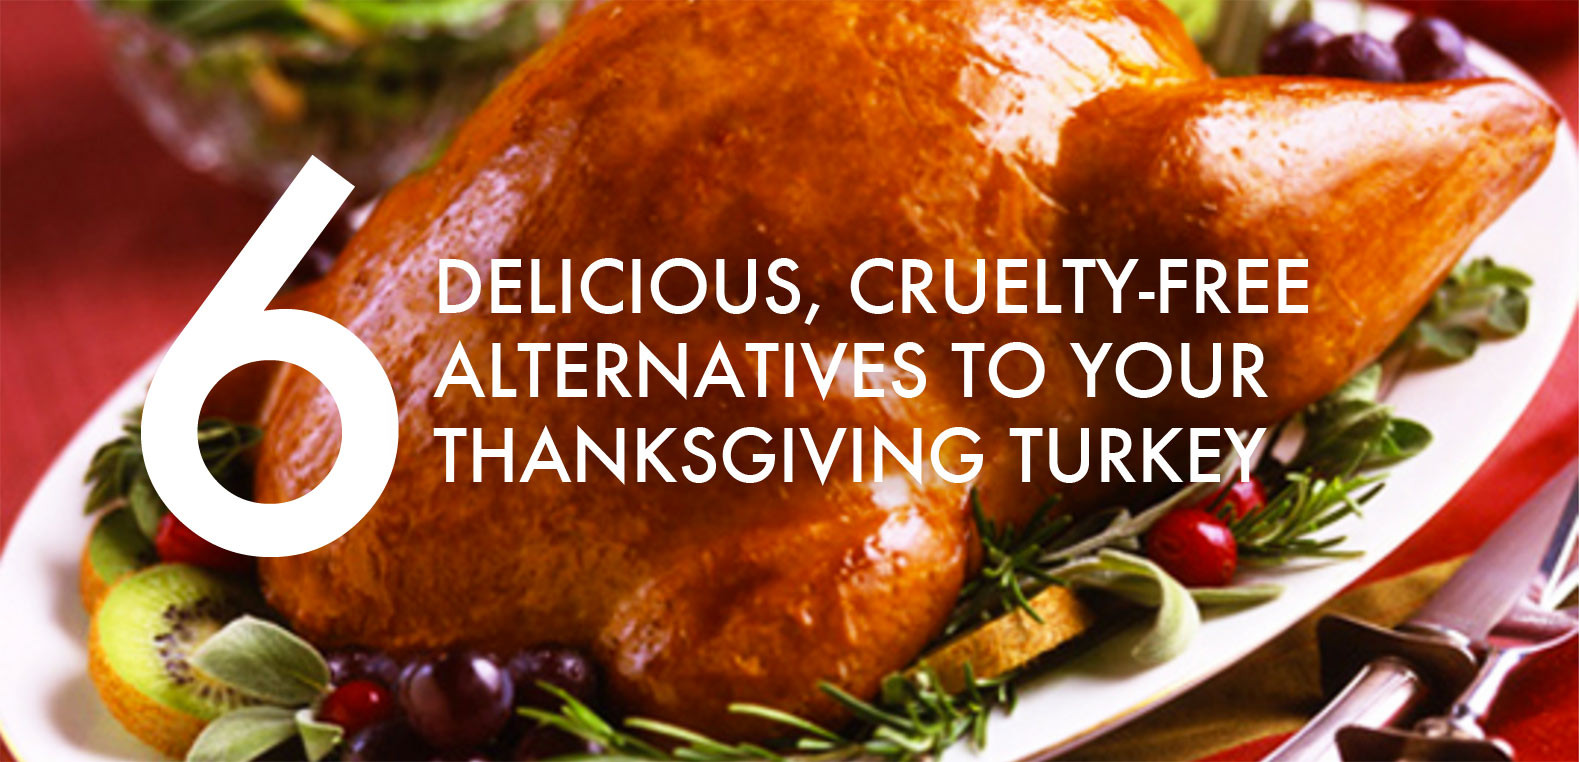 Turkey Substitutes For Thanksgiving  6 Vegan and ve arian turkey alternatives for